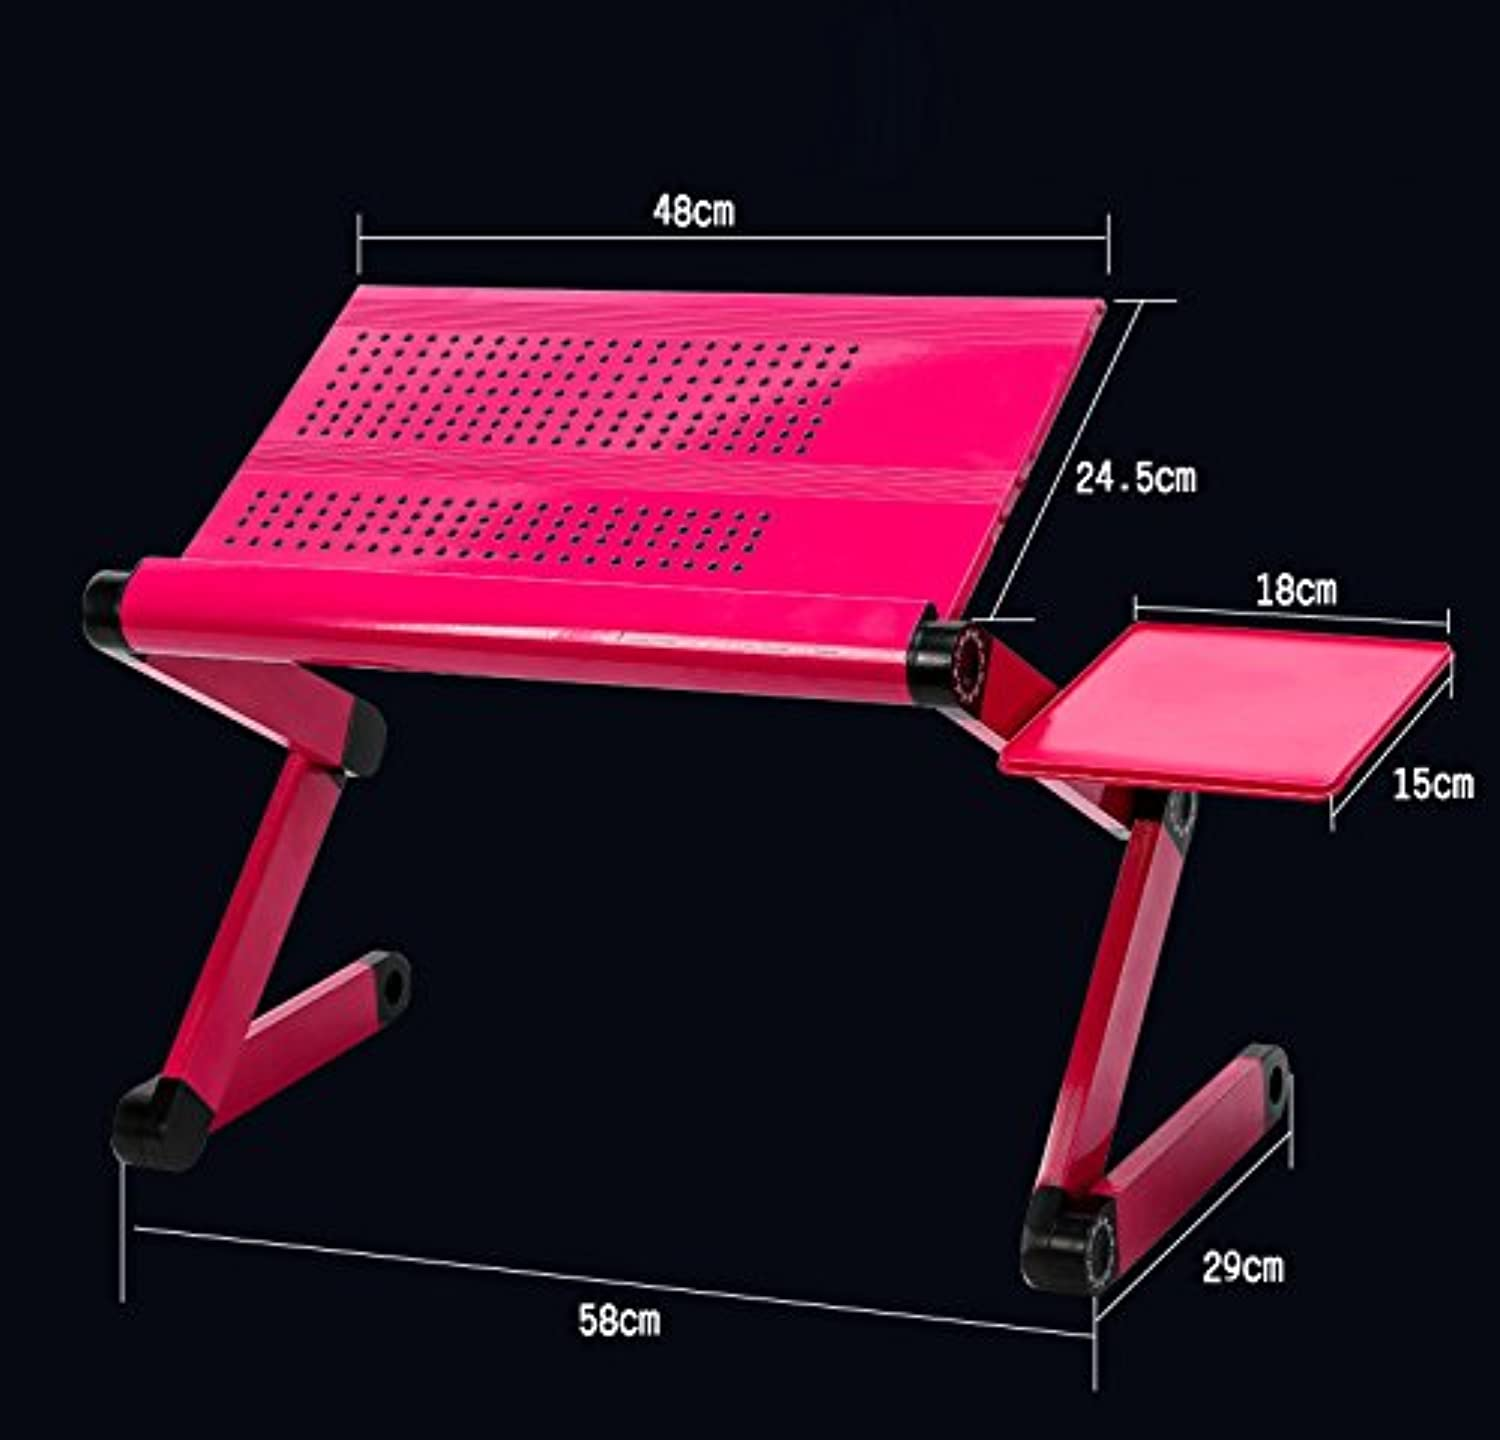 Qiaoba- The Couch fold Desk Aluminum Alloy Notebook Lapdesk I,